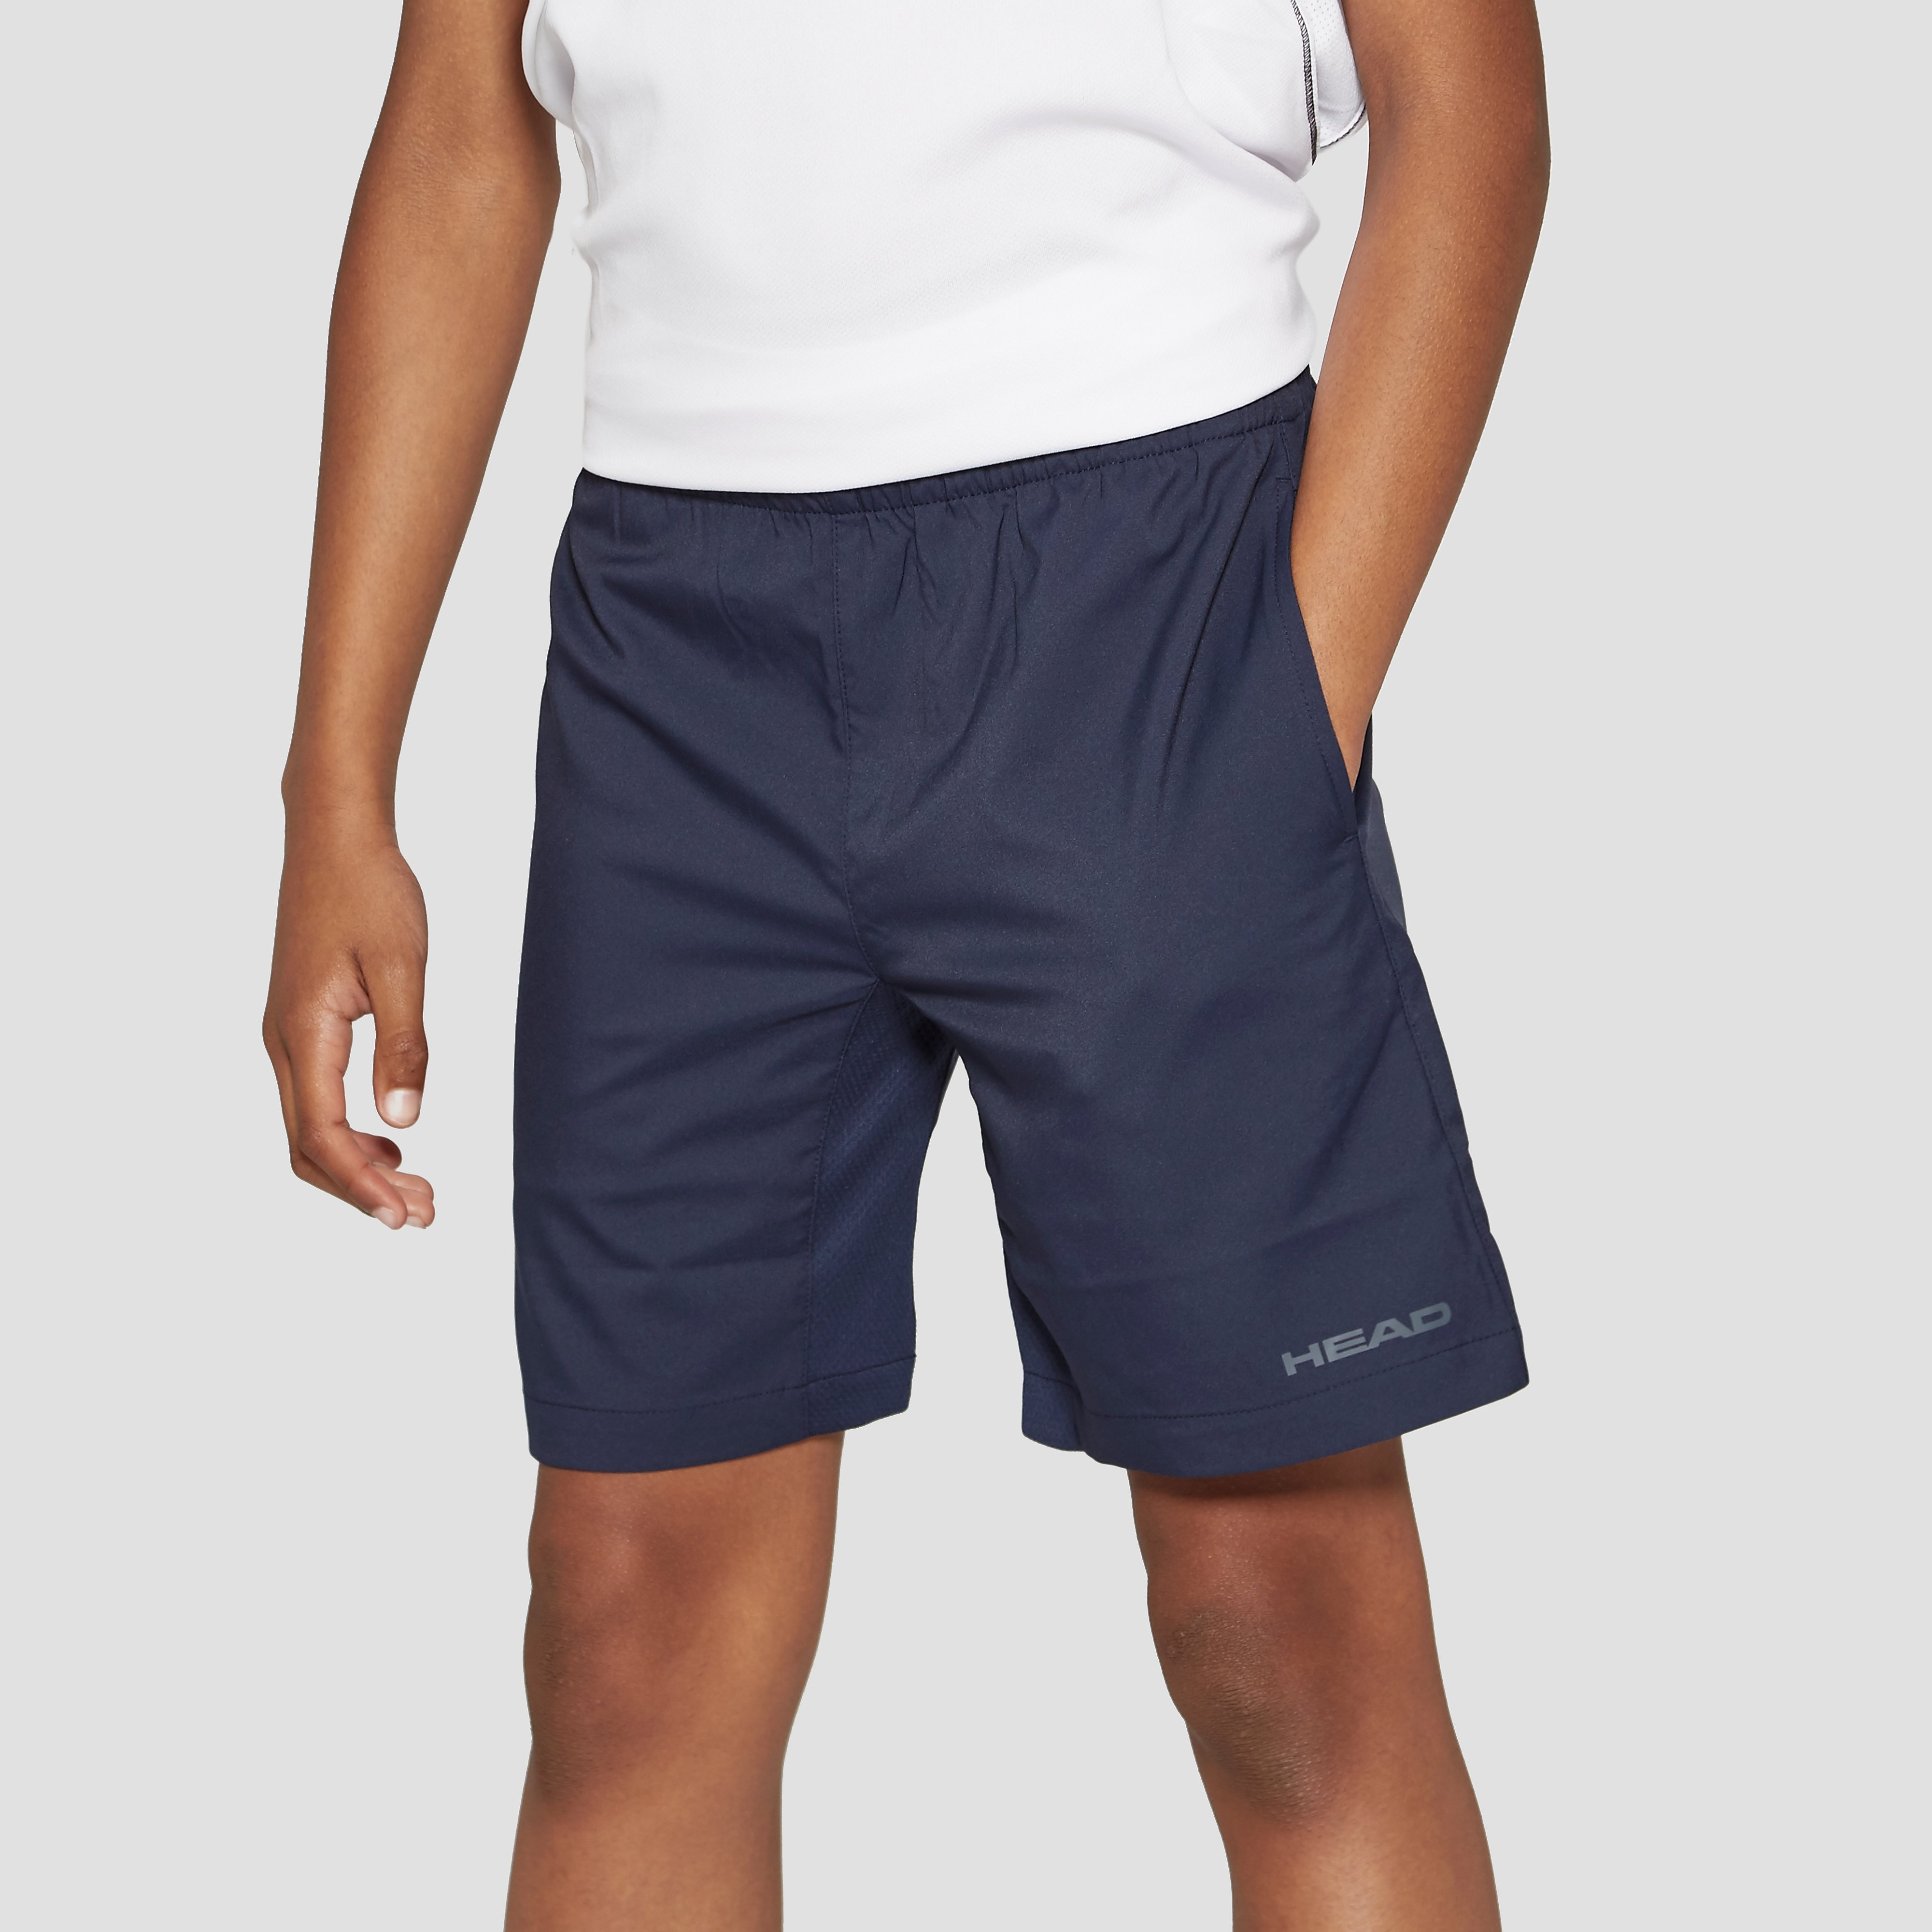 Head Club Bermuda Junior Tennis Shorts